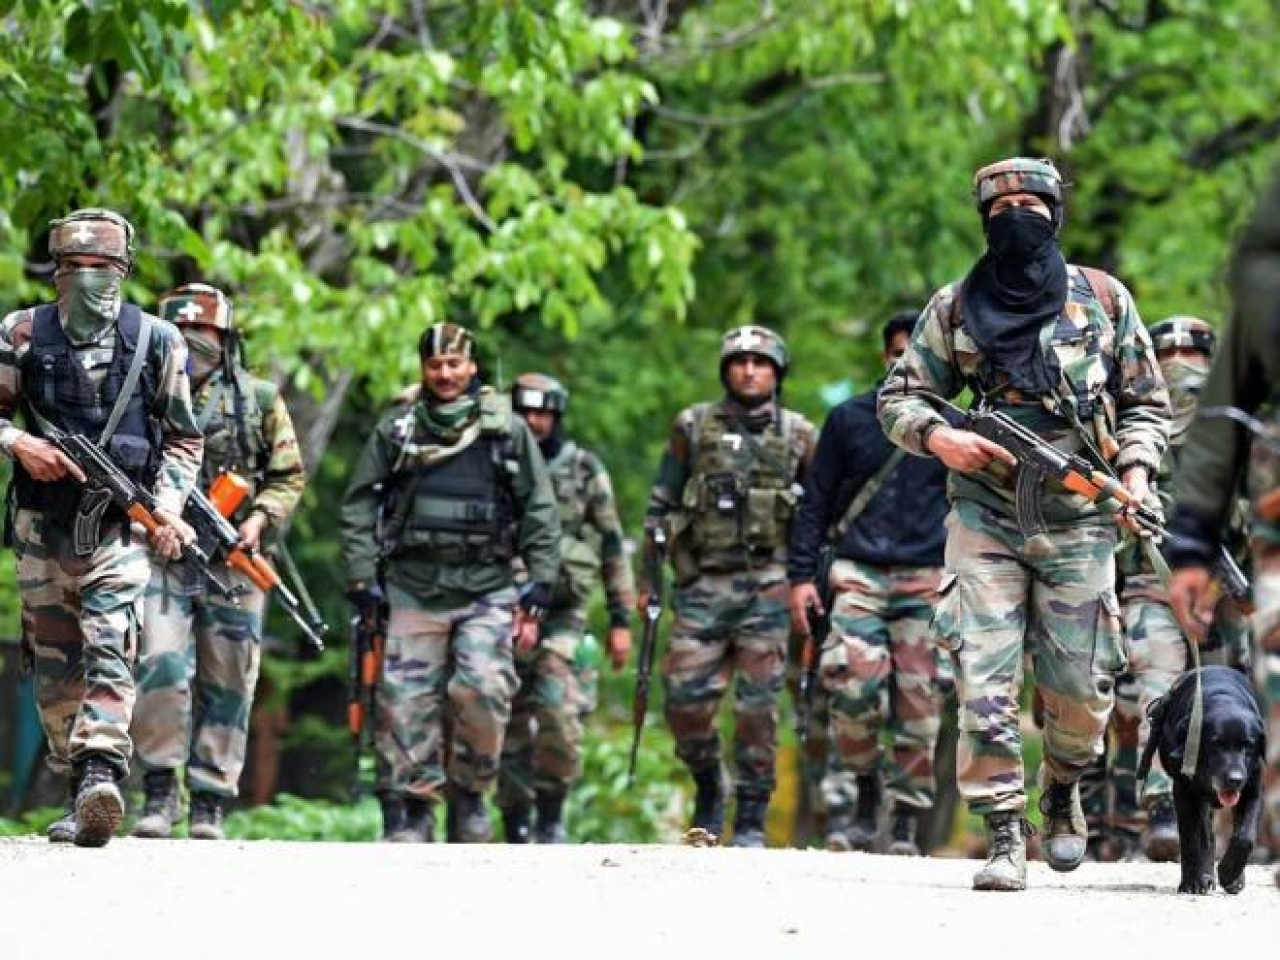 Security Forces Kill Two Terrorists In J&K's Awantipora, Including One Involved In Recent Grenade Attacks